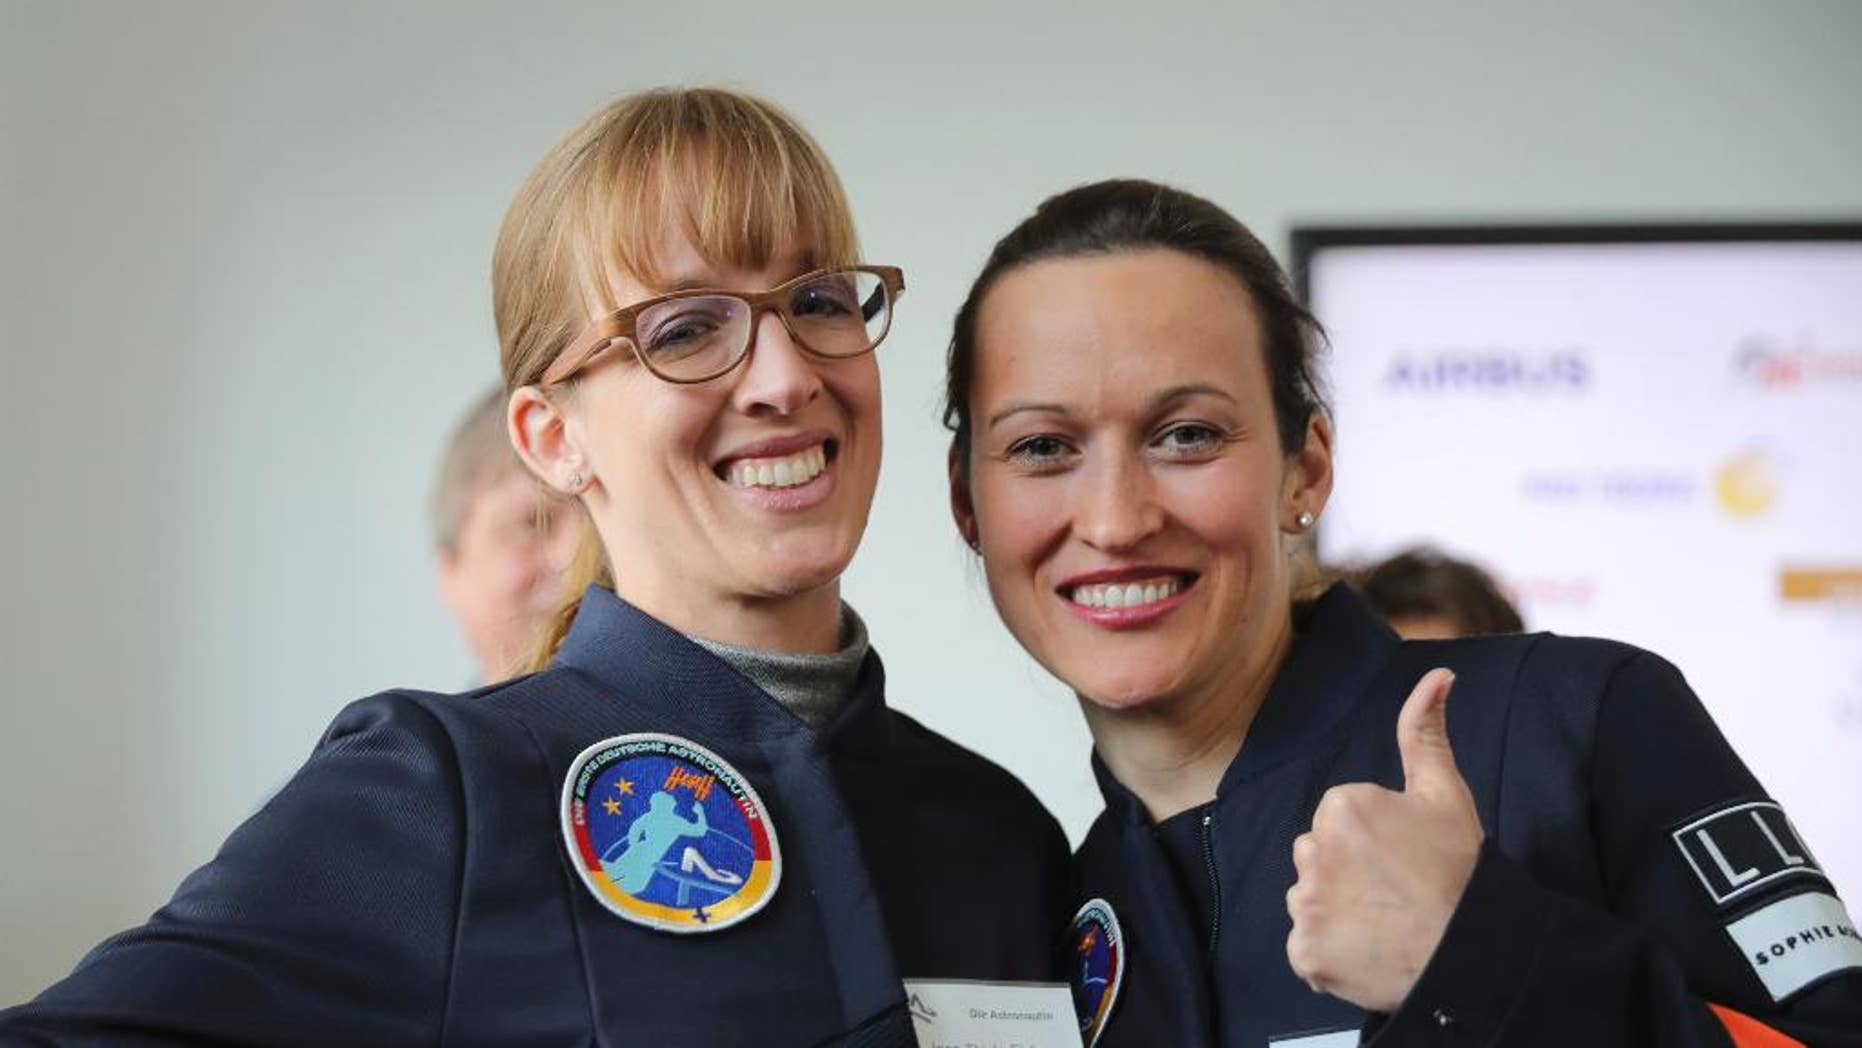 Insa Thiele-Eich, left, and  Nicola Baumann give a thumb up sign in Berlin, Wednesday, April 19, 2017. A fighter pilot and a meteorologist have made the finals in the race to become Germany's first female astronaut. A panel of experts picked the two finalists - German air force Eurofighter jet pilot Maj. Nicola Baumann and meteorologist Insa Thiele-Eich - from the top six candidates.  (Michael Kappeler/dpa via AP)